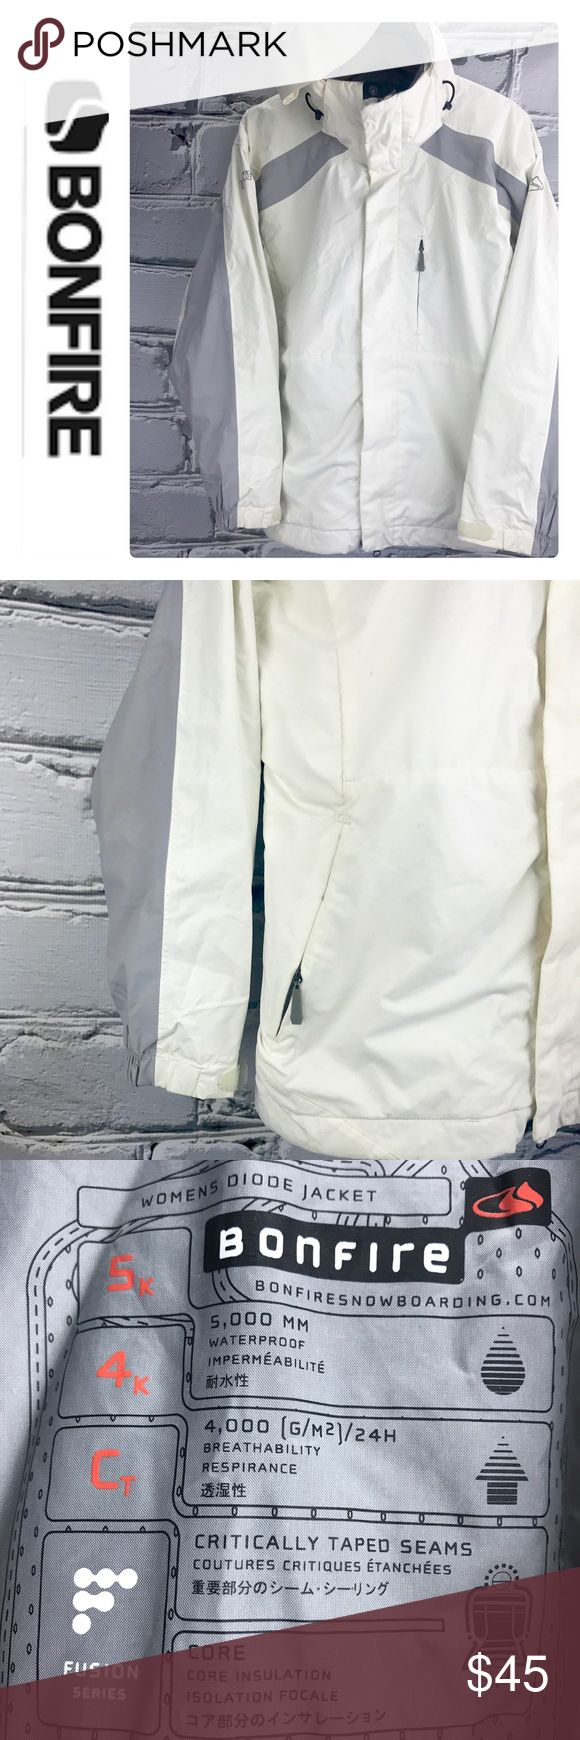 💕SALE💕Bonfire Fusion Ivory/Gray Snowboard Jacket Fabulous 💕Bonfire Fusion Ivory/Gray Snowboard Jacket with pockets Galore See ad for details in photo of all the benefits Great Condition Bonfire Jackets & Coats